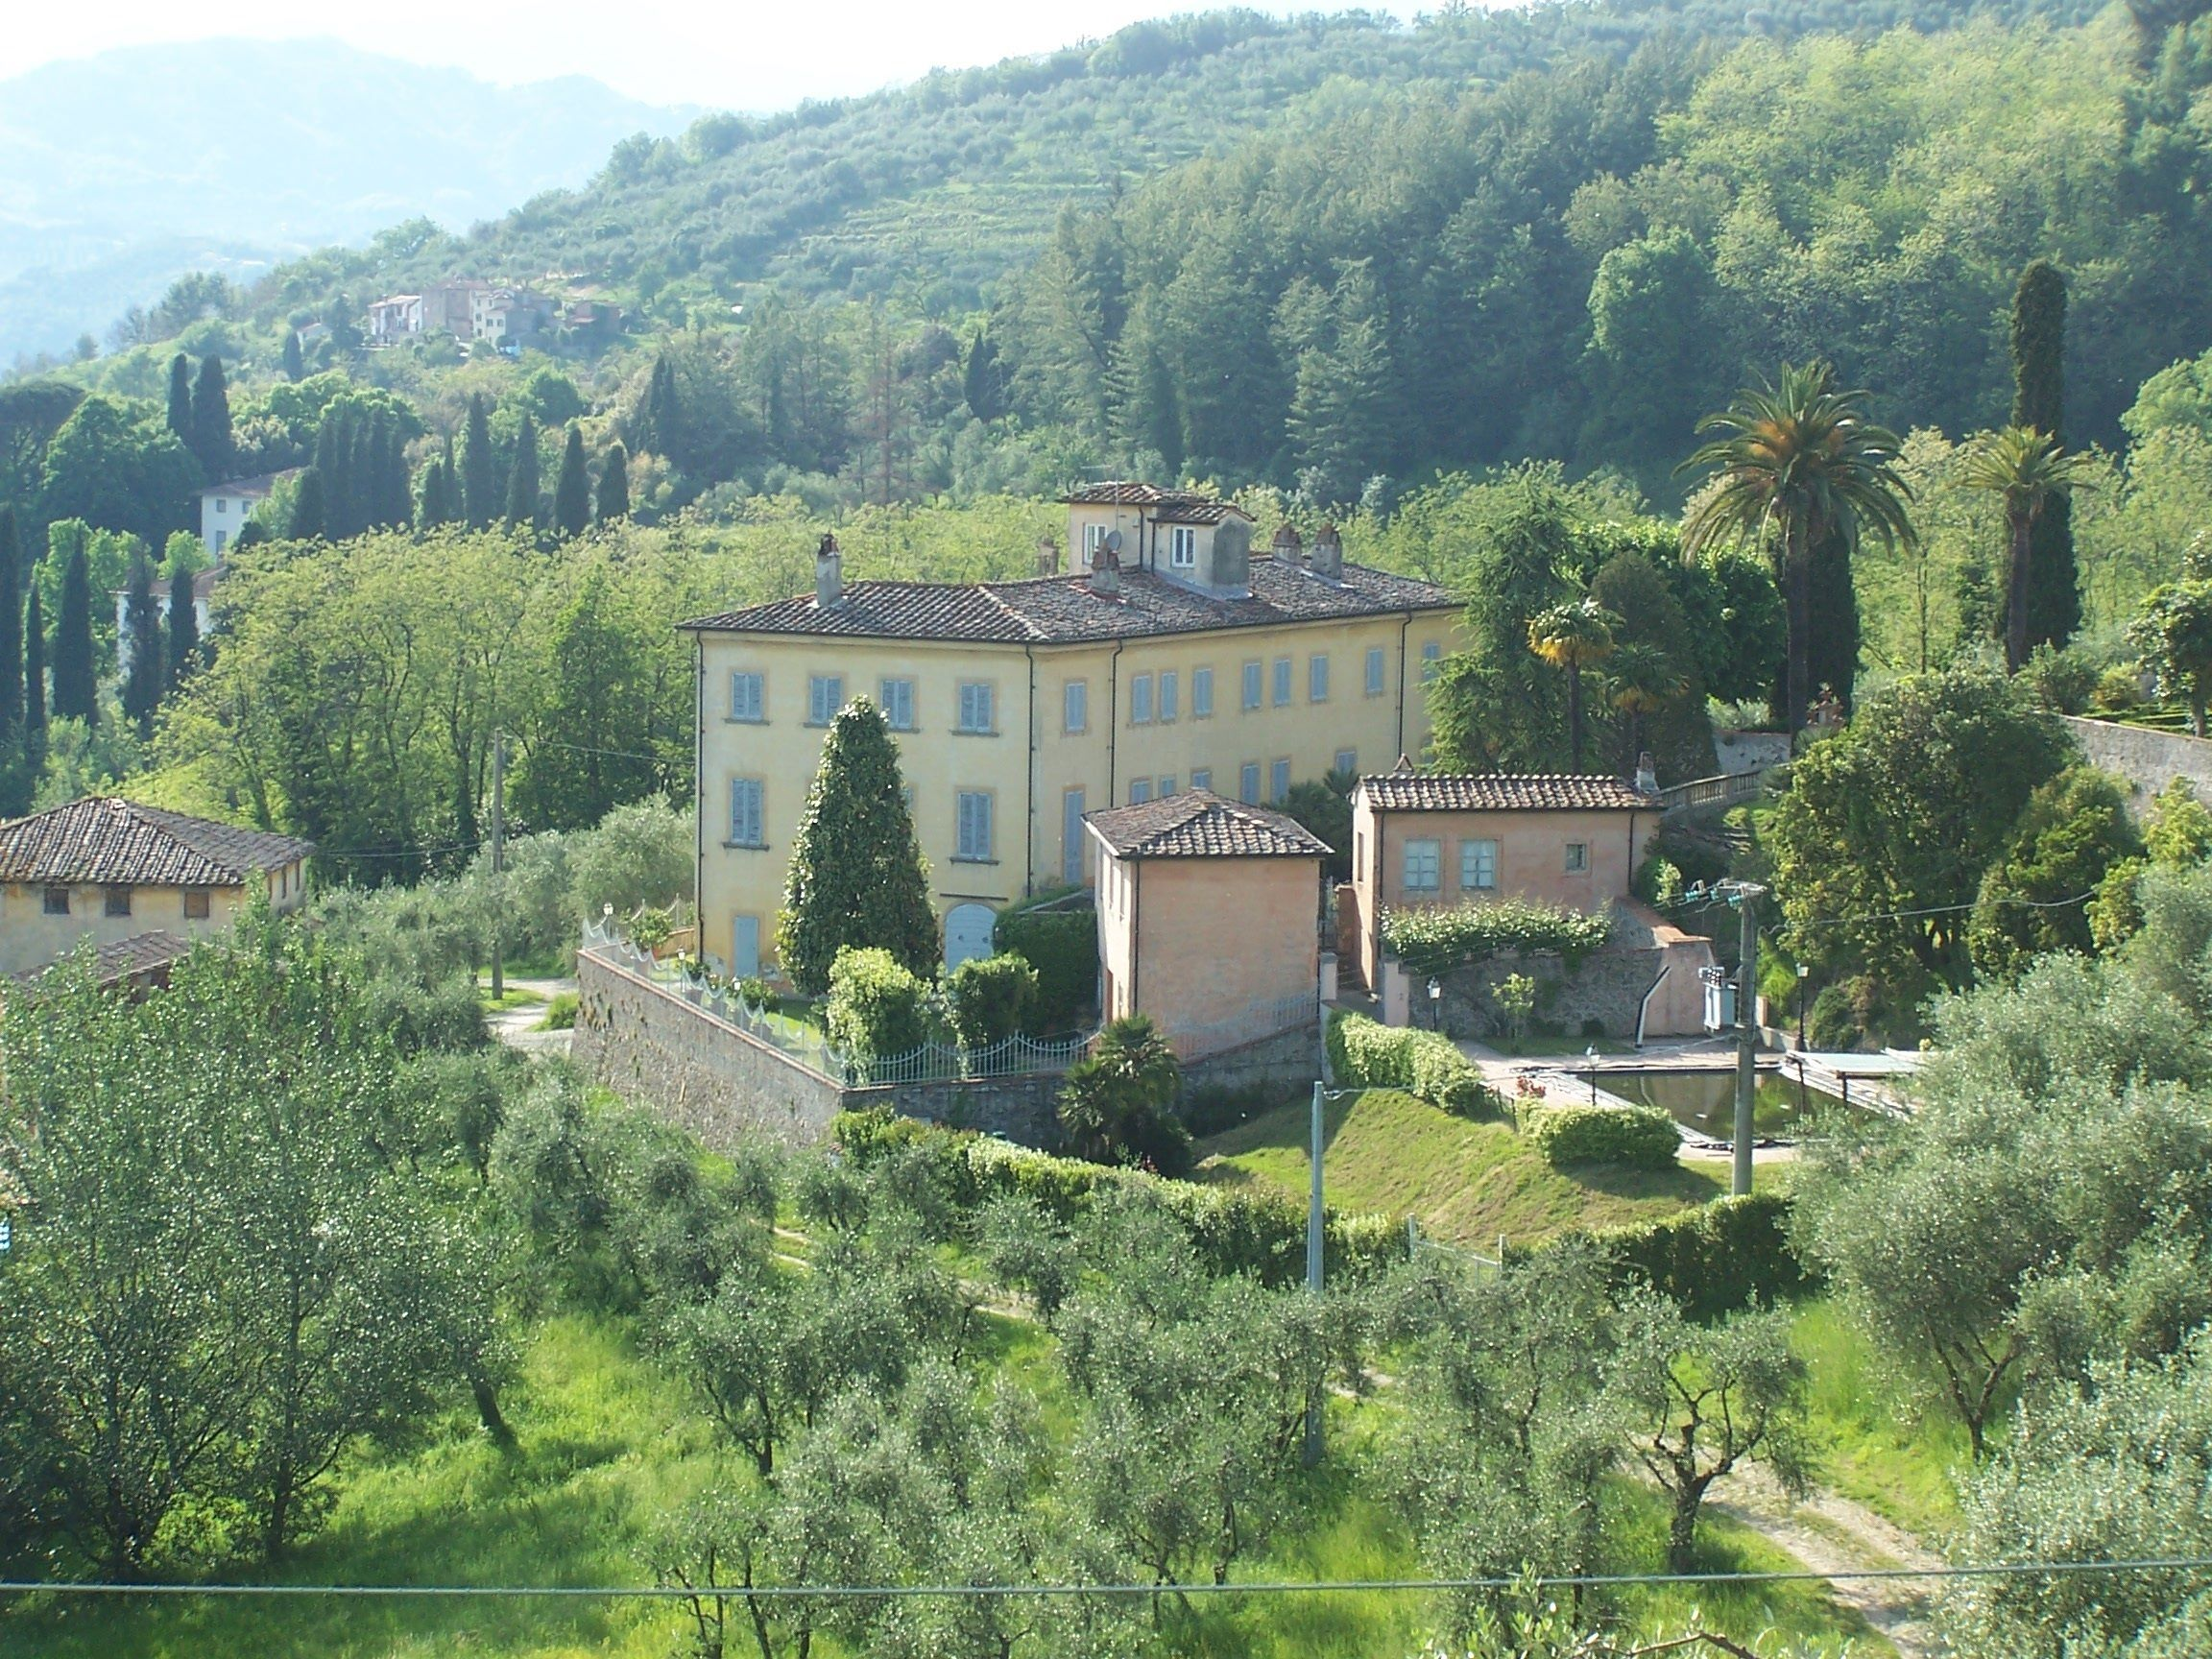 Lucca historic period villa north hills  for sale. Tuscany property, Real estate Italy. www.lucaevillas.it